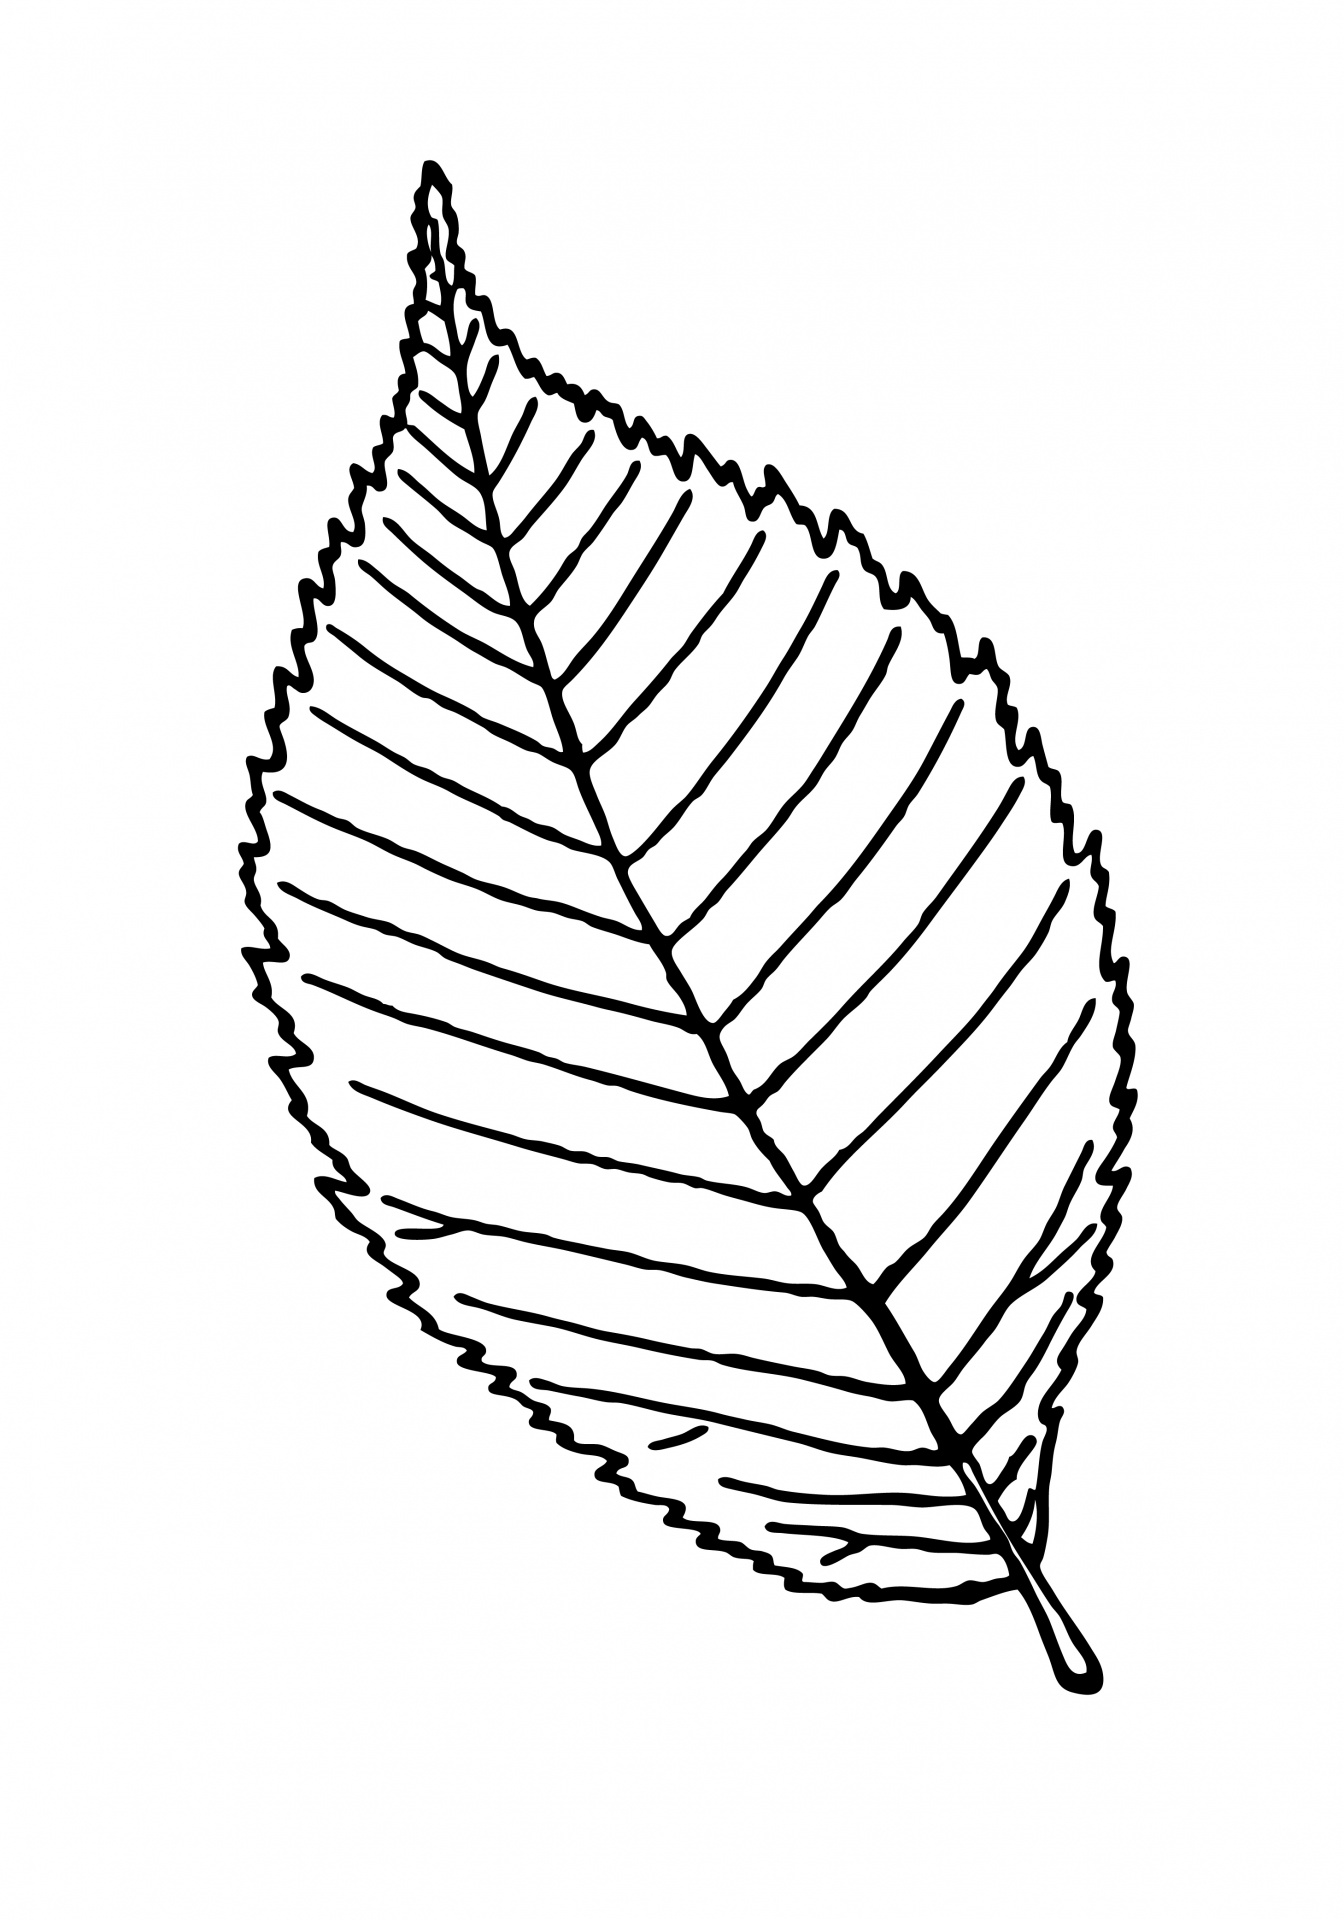 1344x1920 Leaf Outline Clipart Leaf Template